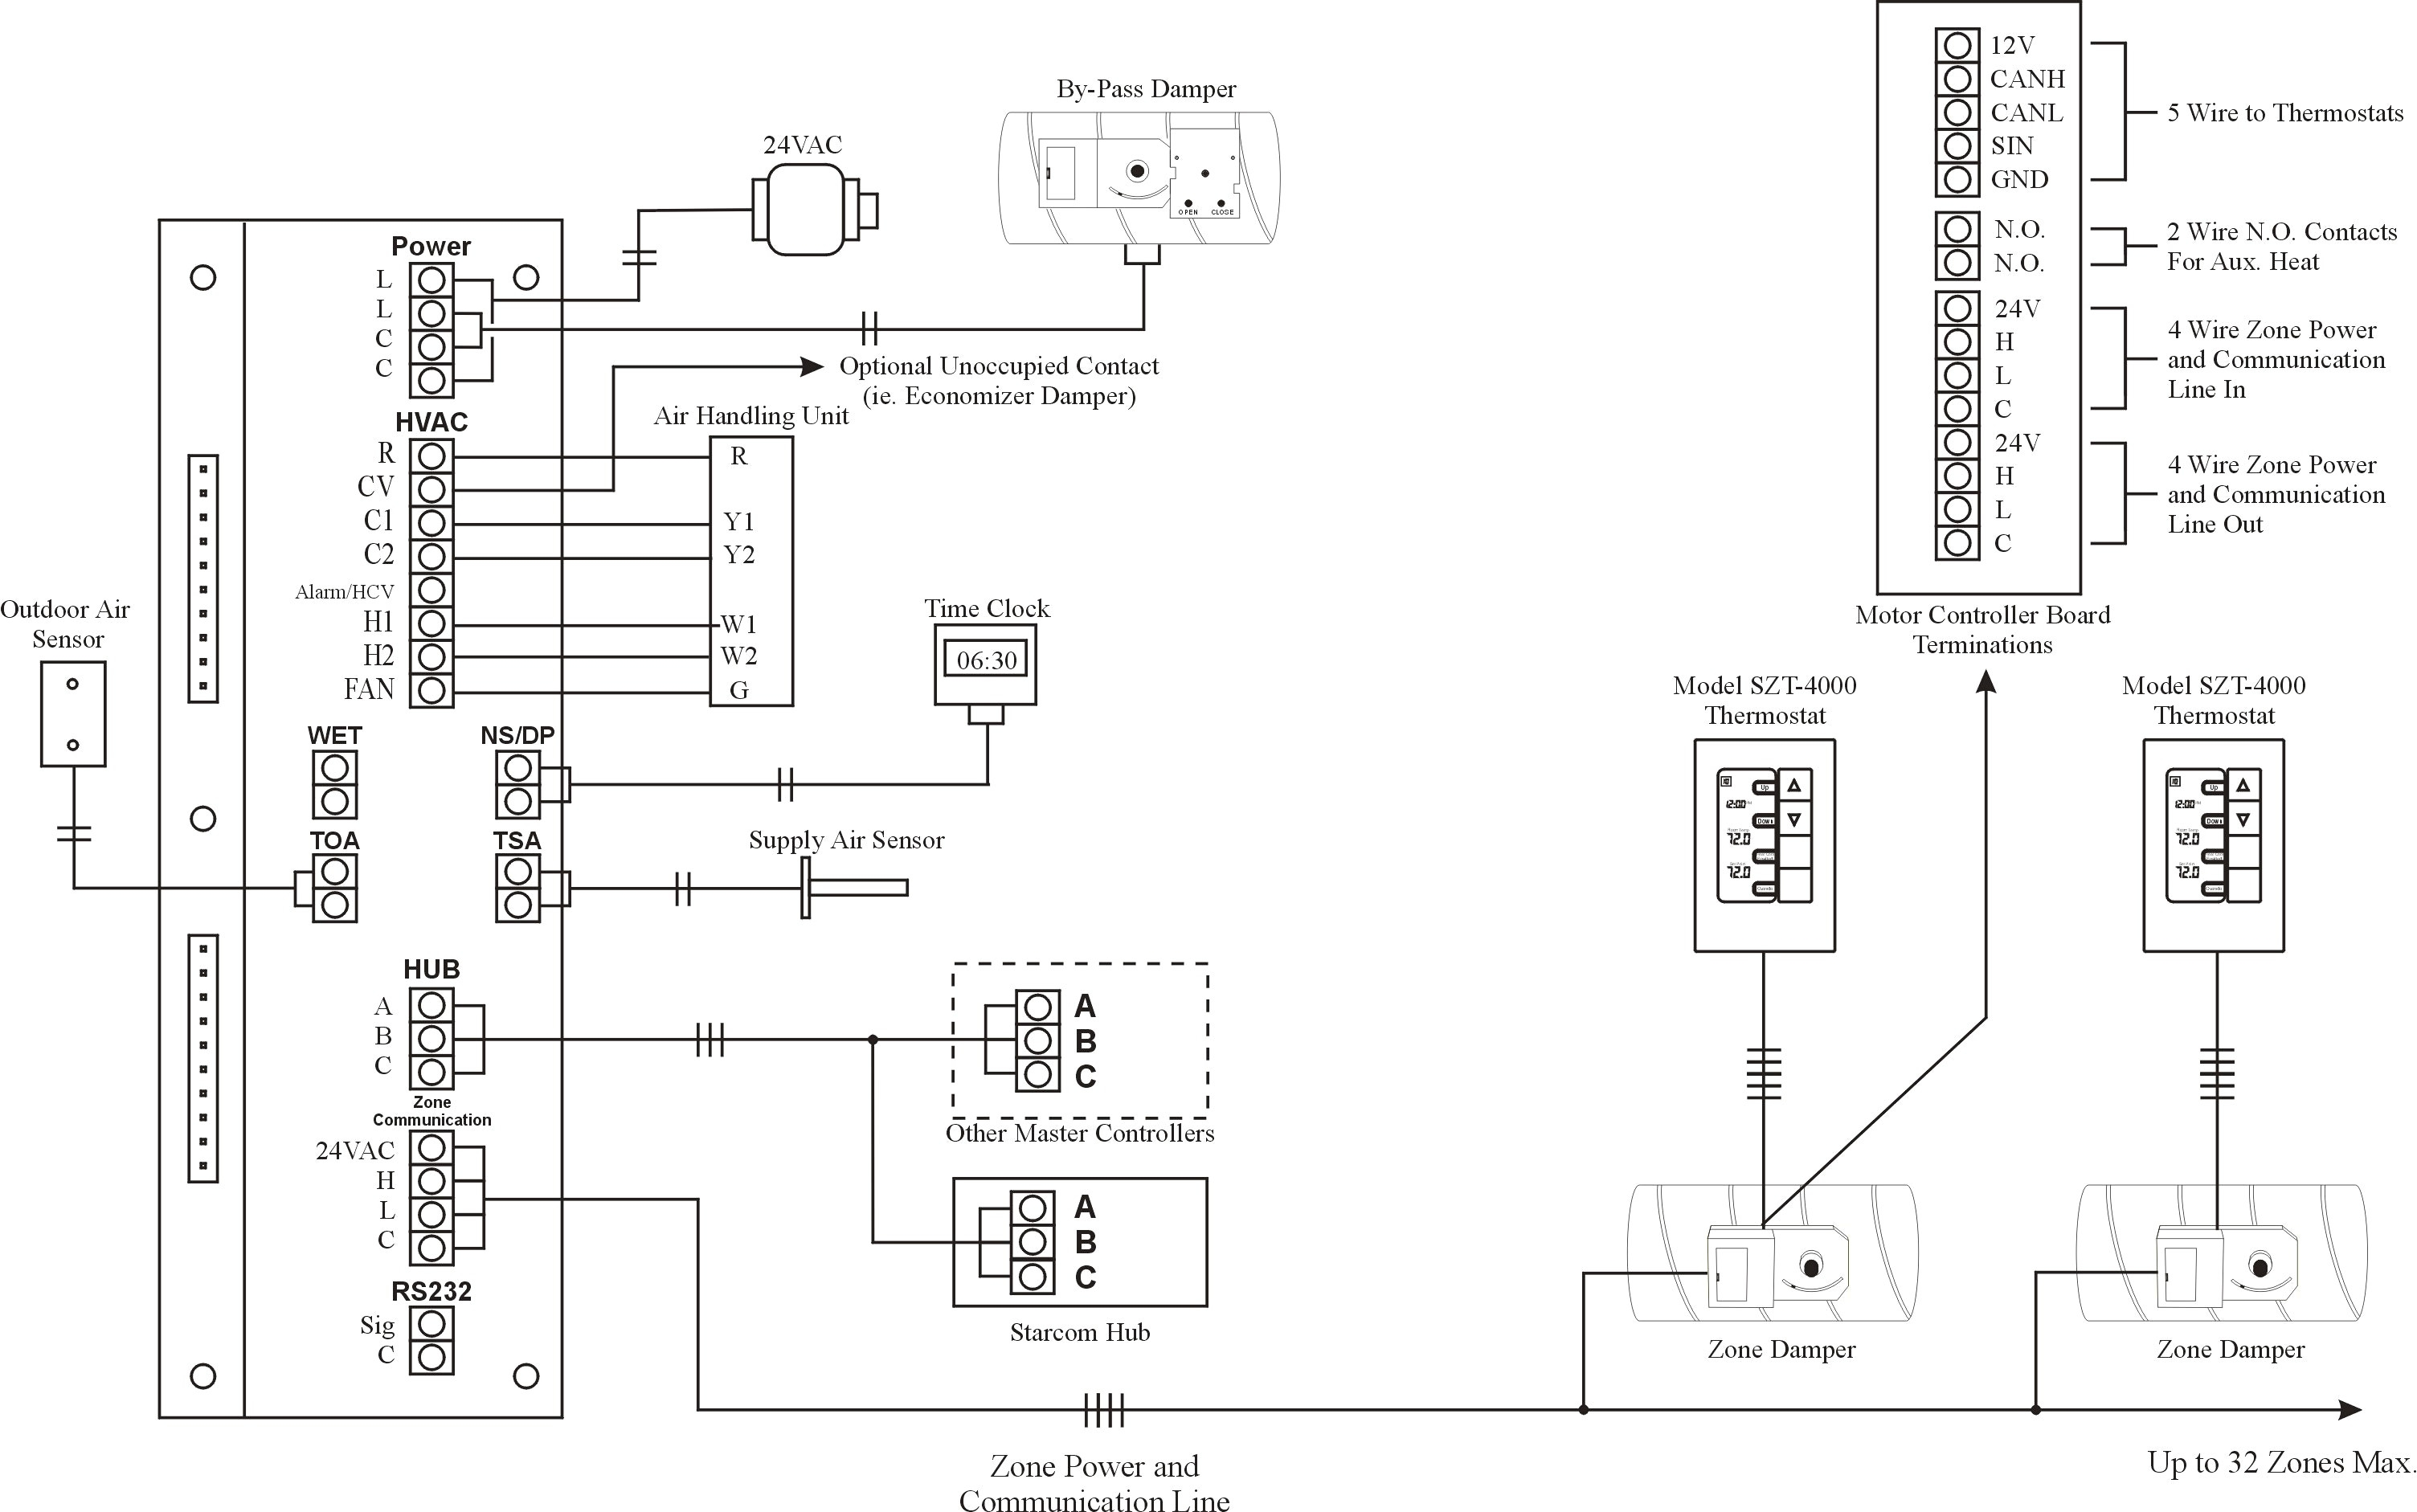 Fire Smoke Damper Wiring Diagram